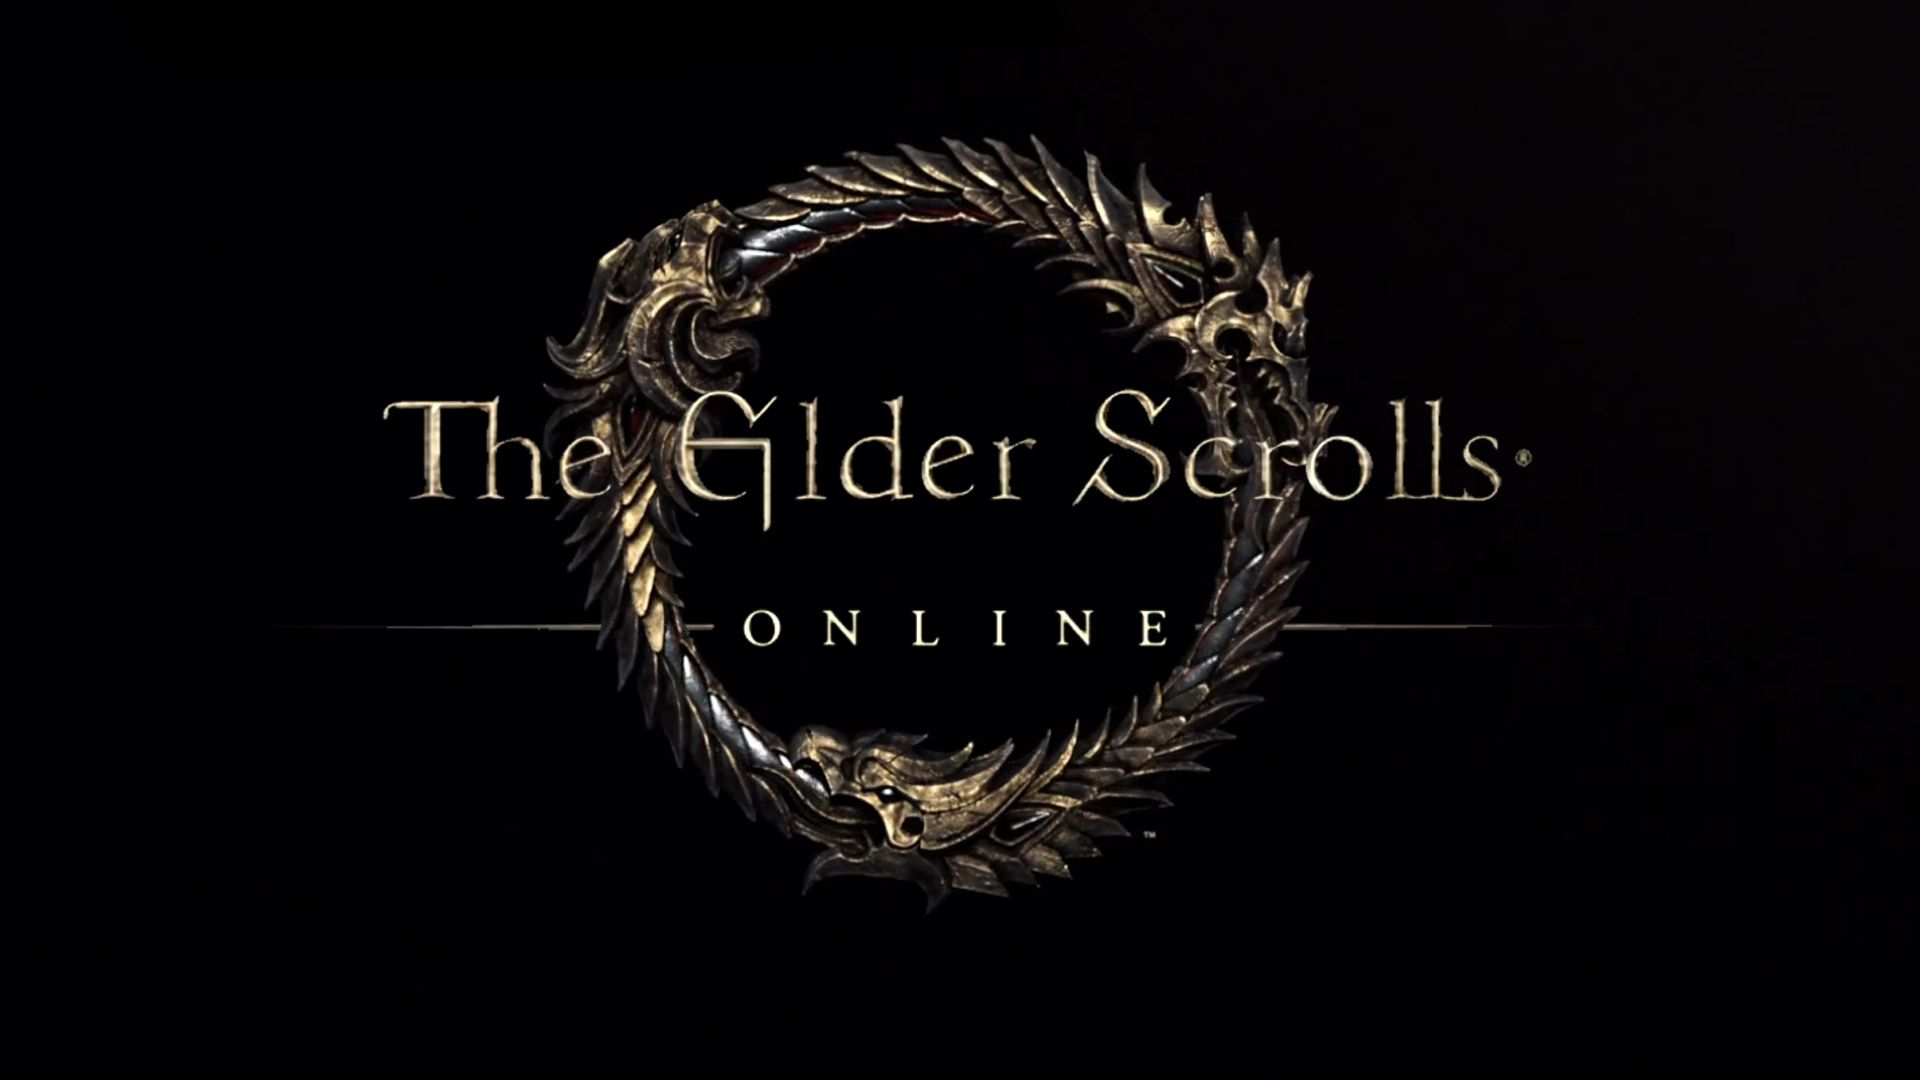 Neues Video zeigt die Charaktererstellung in The Elder Scrolls Online